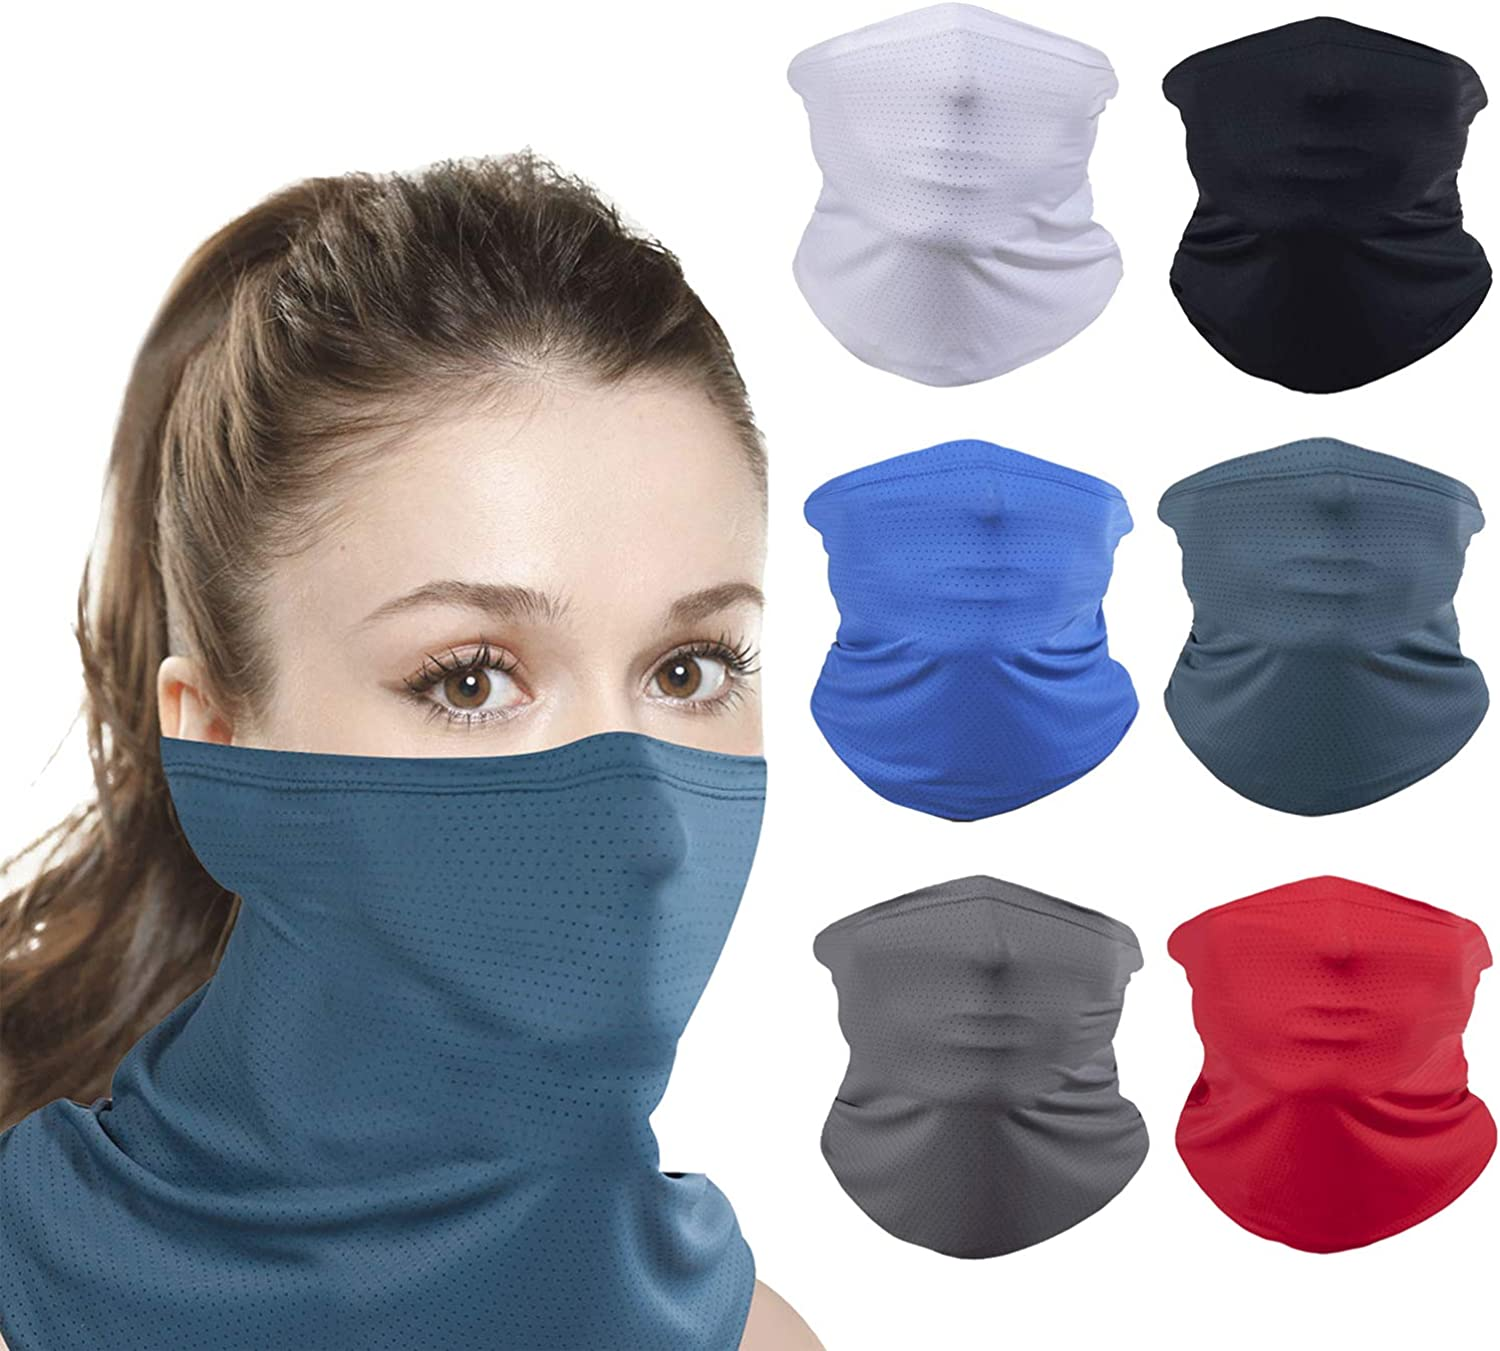 Delviemi 6 Pack Ice Silk Breathable Neck Gaiter Balaclava Bandana Cooling Sports Face Scarf Mask for Dust Outdoors